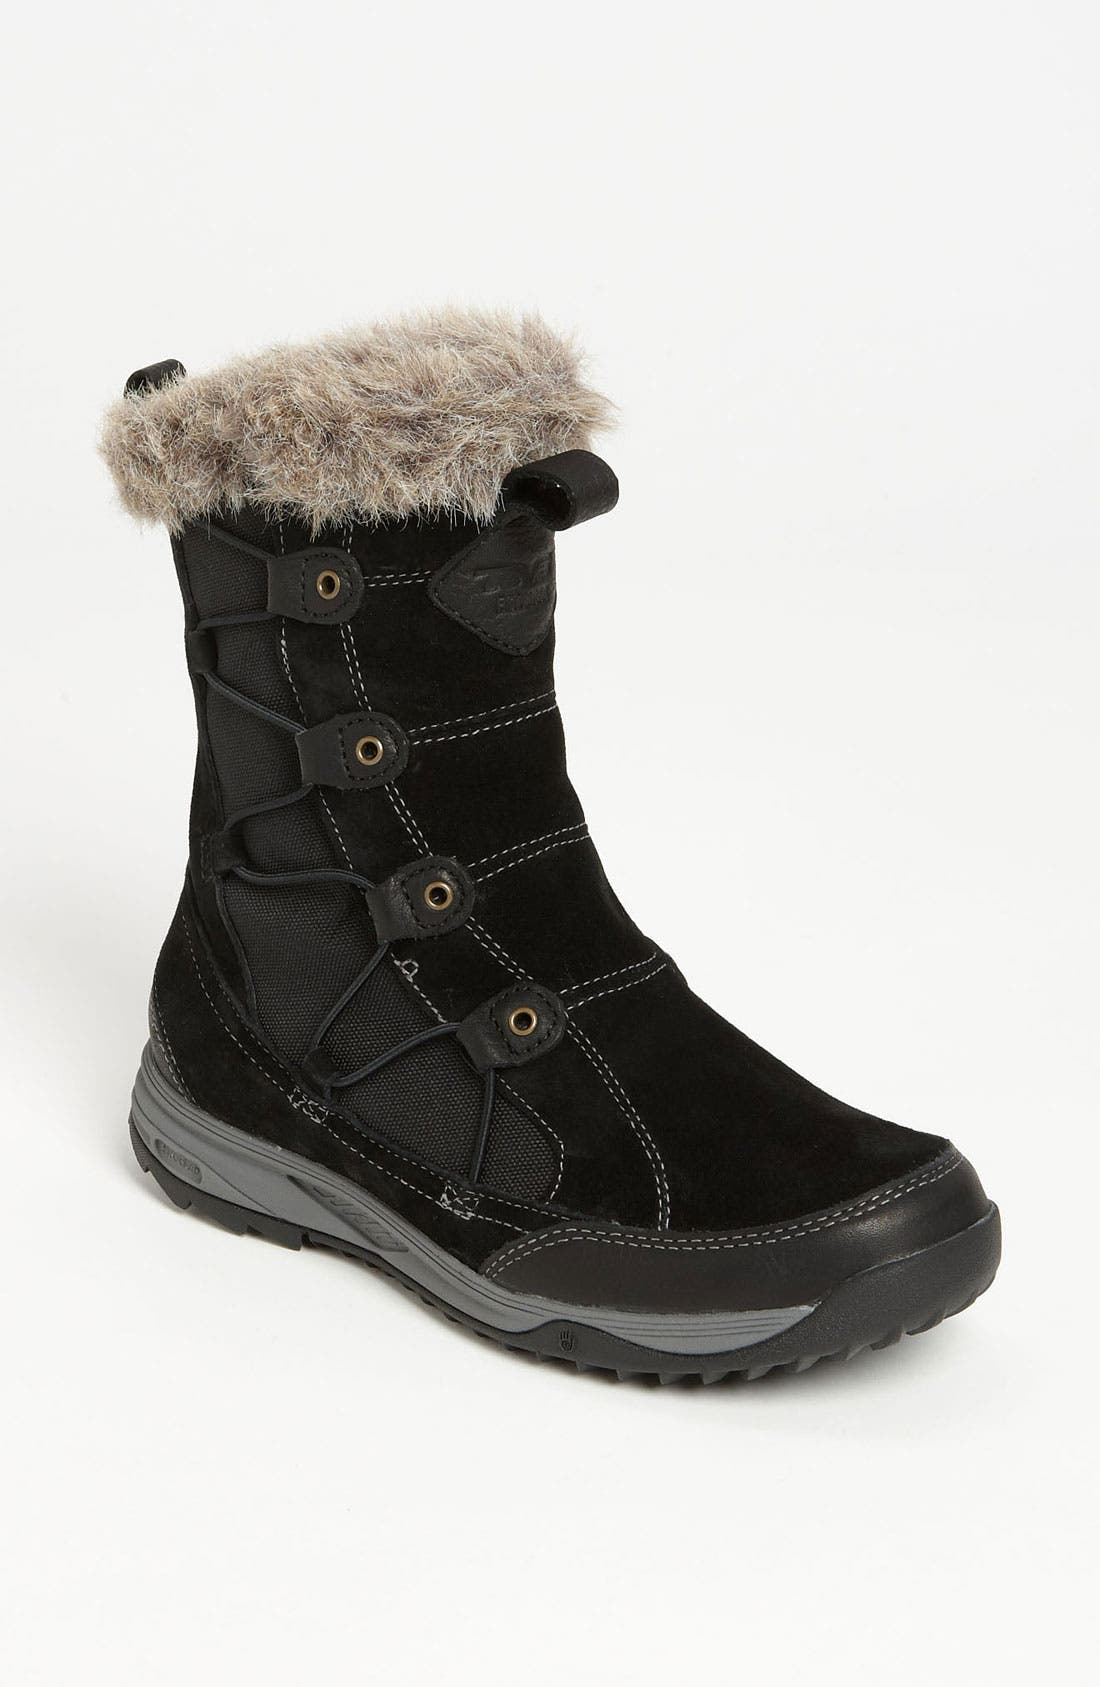 Alternate Image 1 Selected - Teva 'Little Cloud' Waterproof Boot